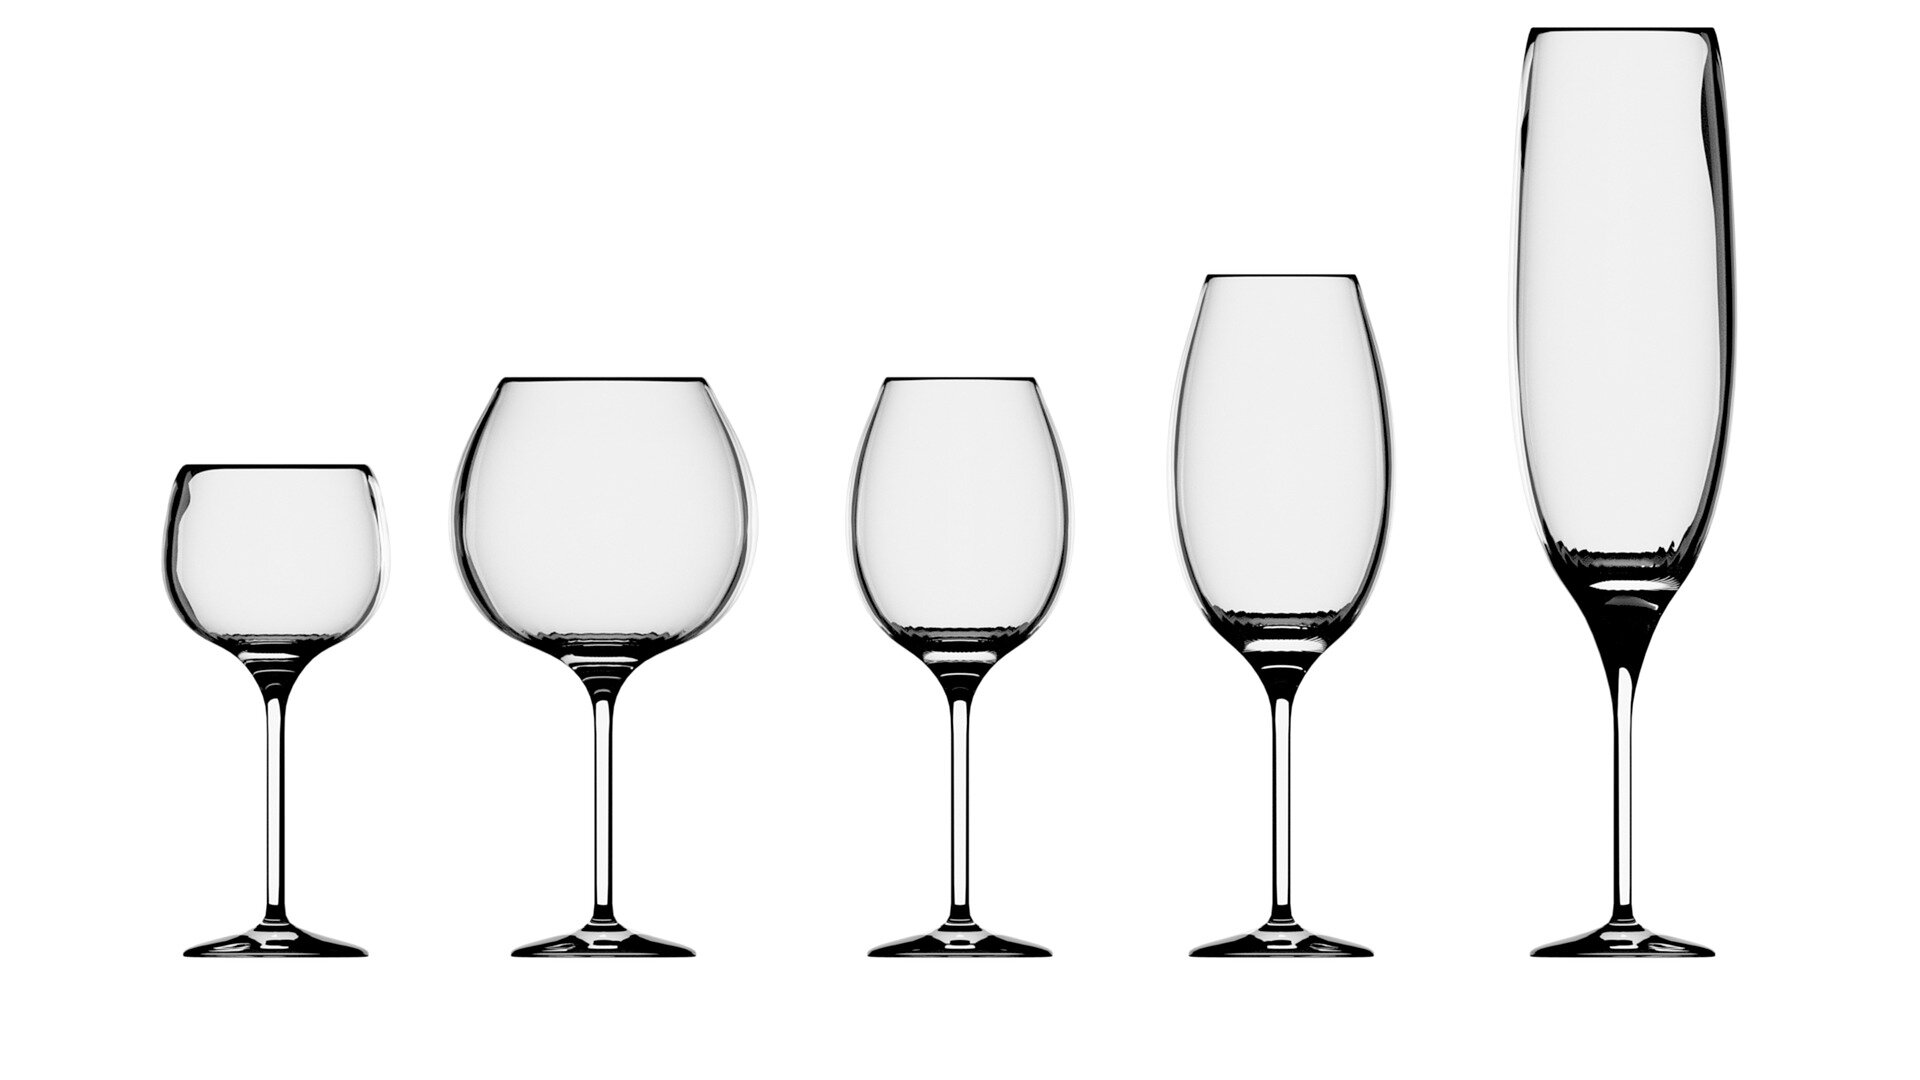 Different shapes, different experiences in wine tasting (photo credit to Shrarad Jadvani, Pixabay)